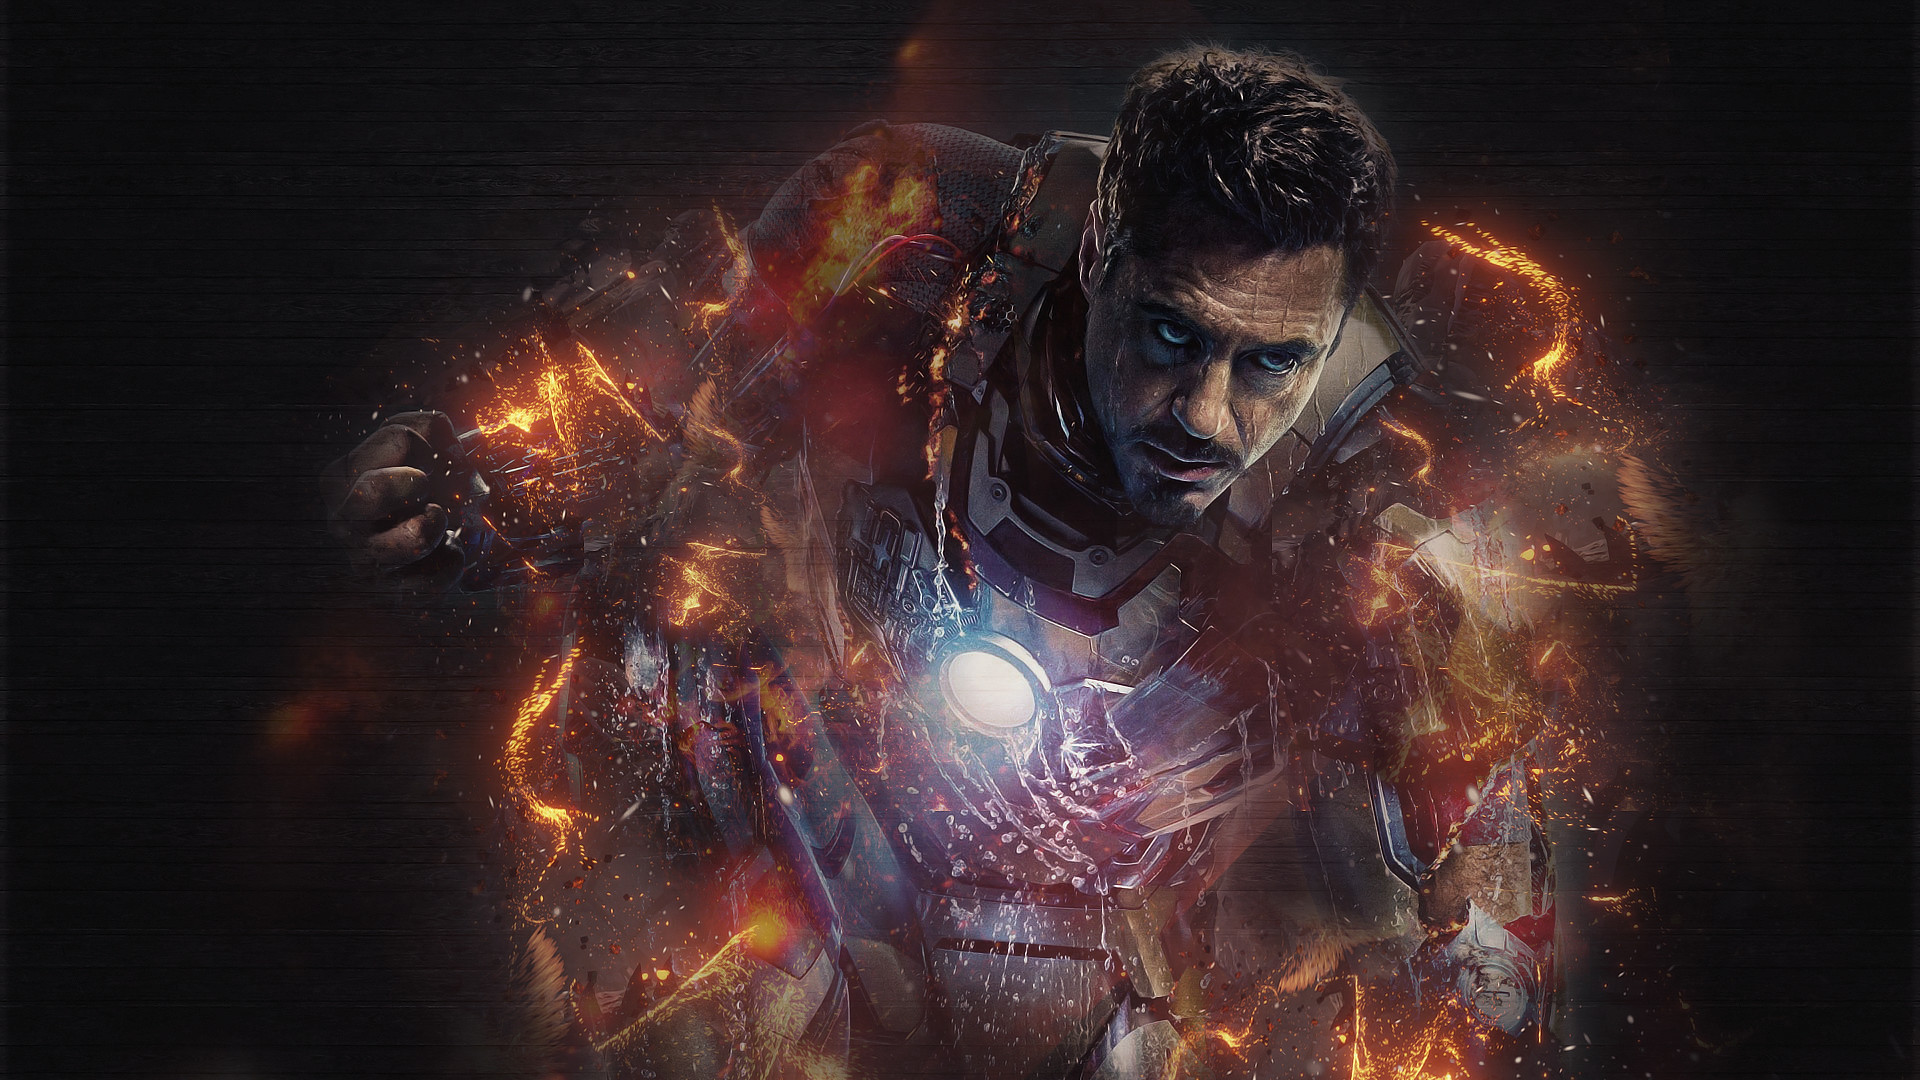 1920x1080 Free Download IRON MAN Full HD Wallpapers free download wallpaper